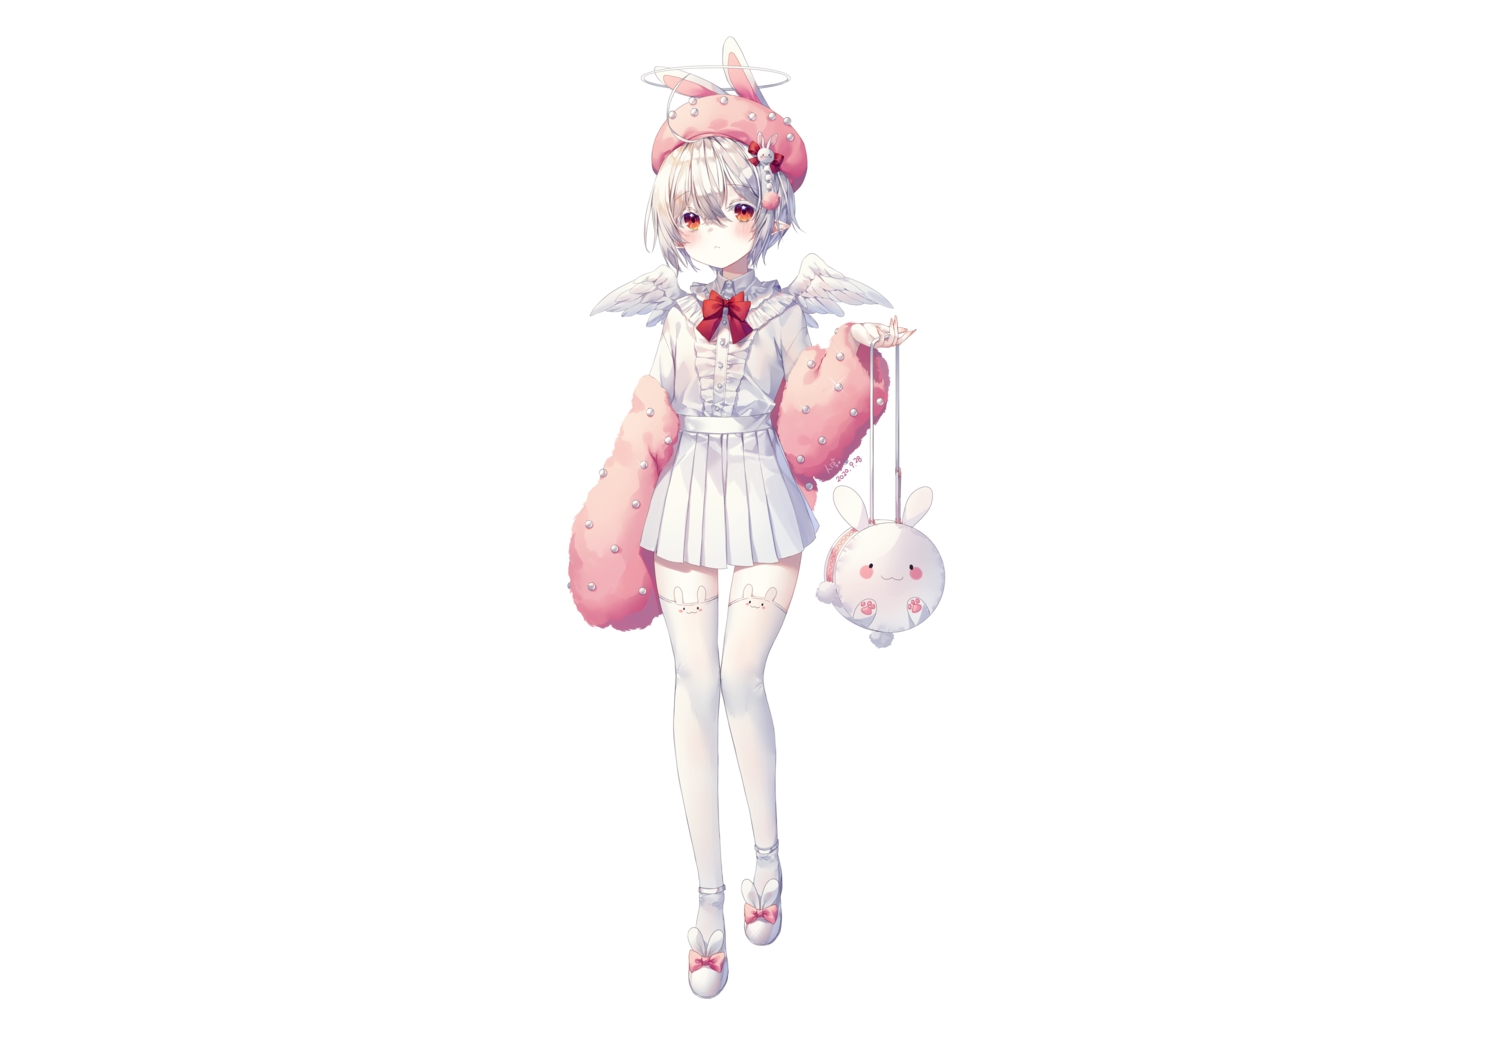 albinoraccoon all_male animal_ears blush bunny_ears cat_smile gray_hair hat male original pointed_ears red_eyes shirt short_hair signed skirt thighhighs trap white wings zettai_ryouiki